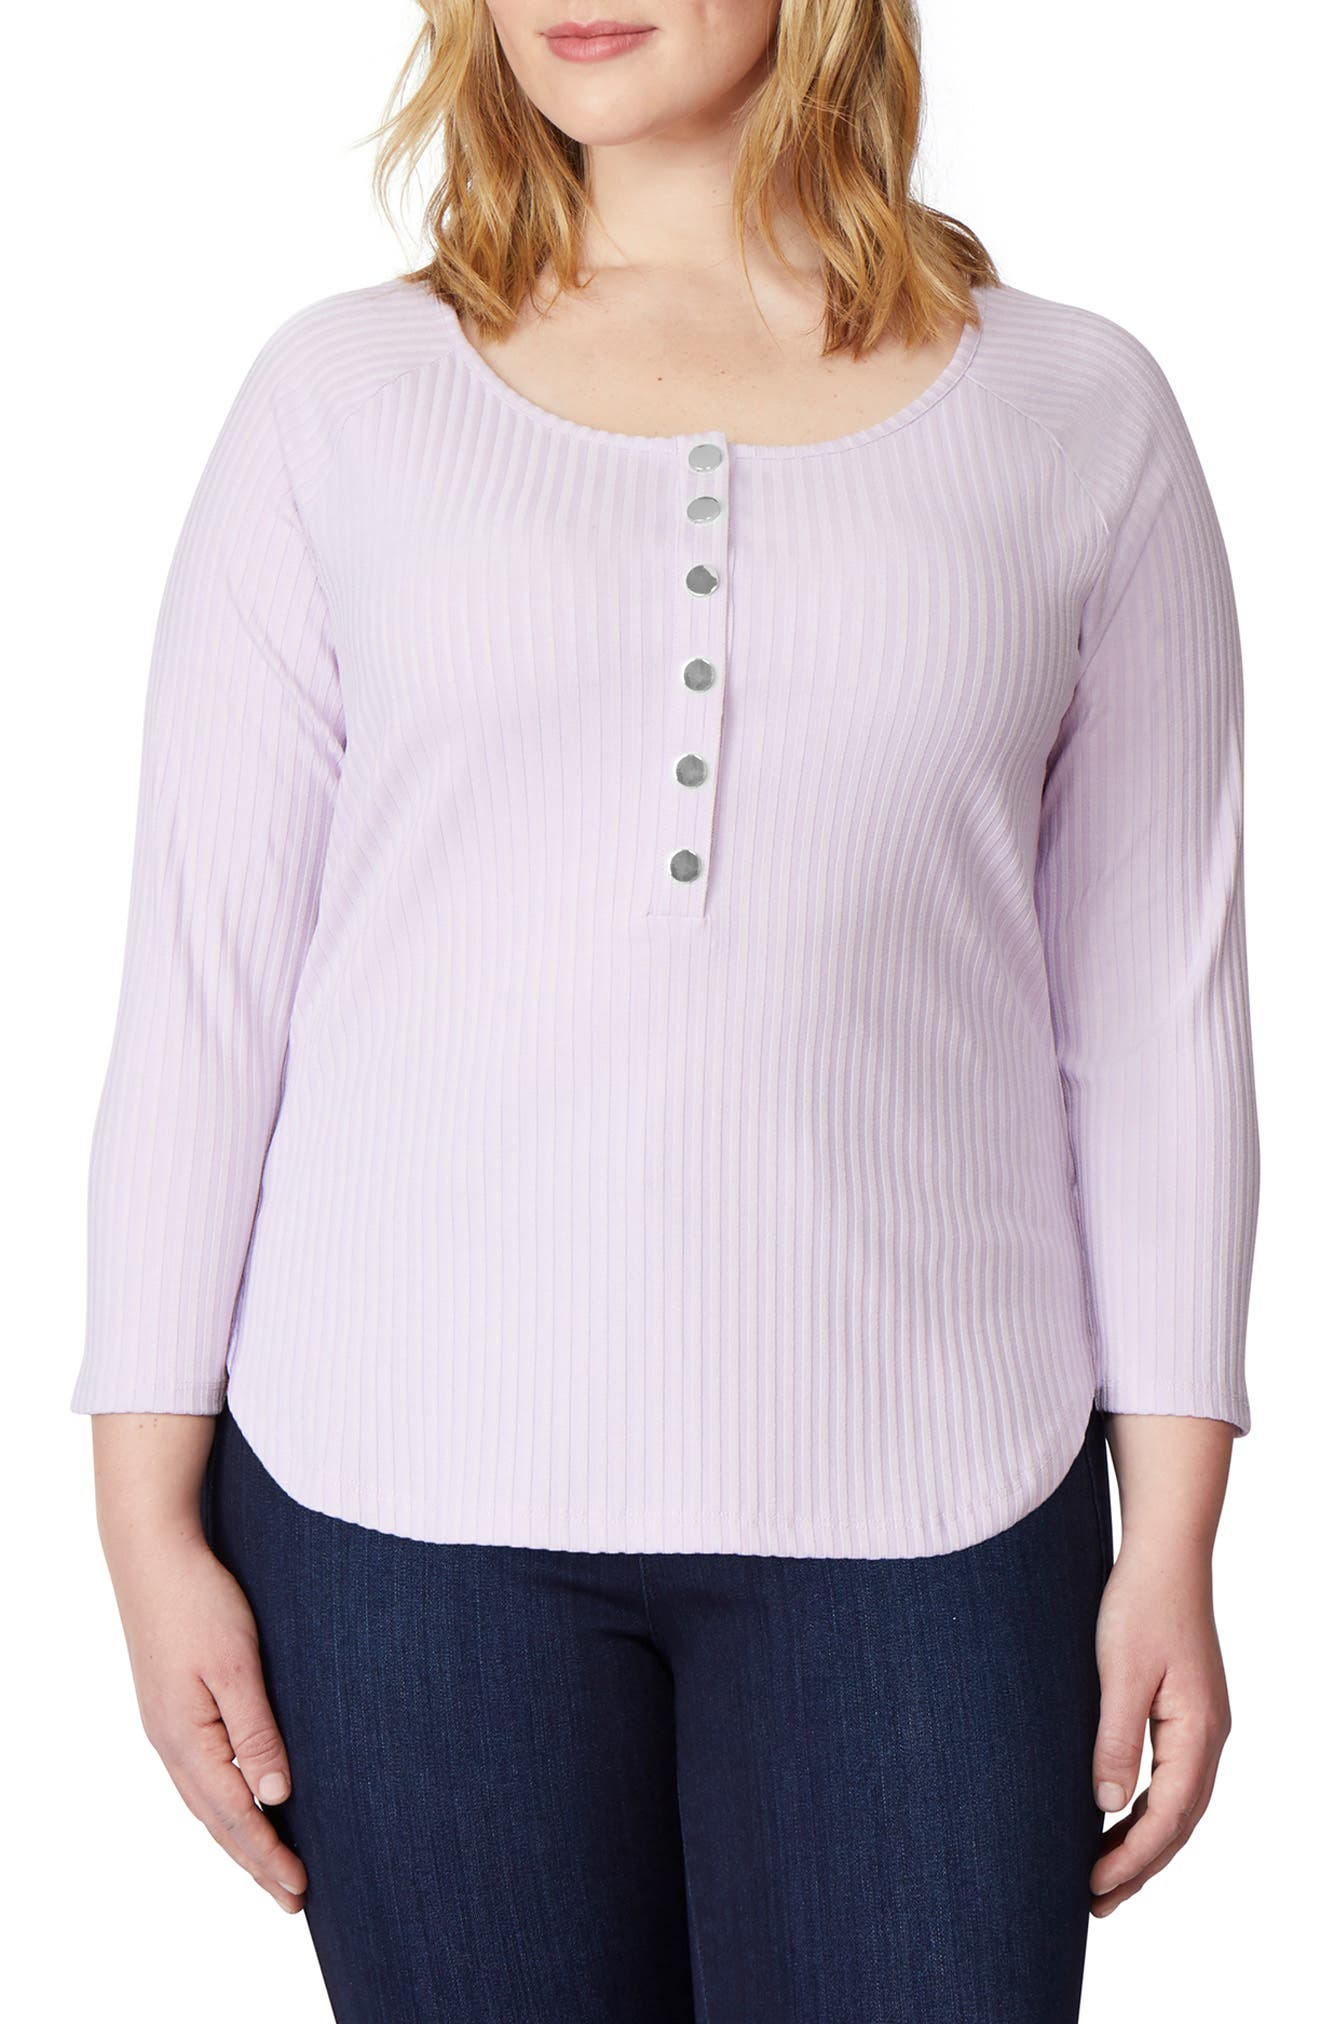 REBEL WILSON X ANGELS Rib Knit Henley Top in Orchid